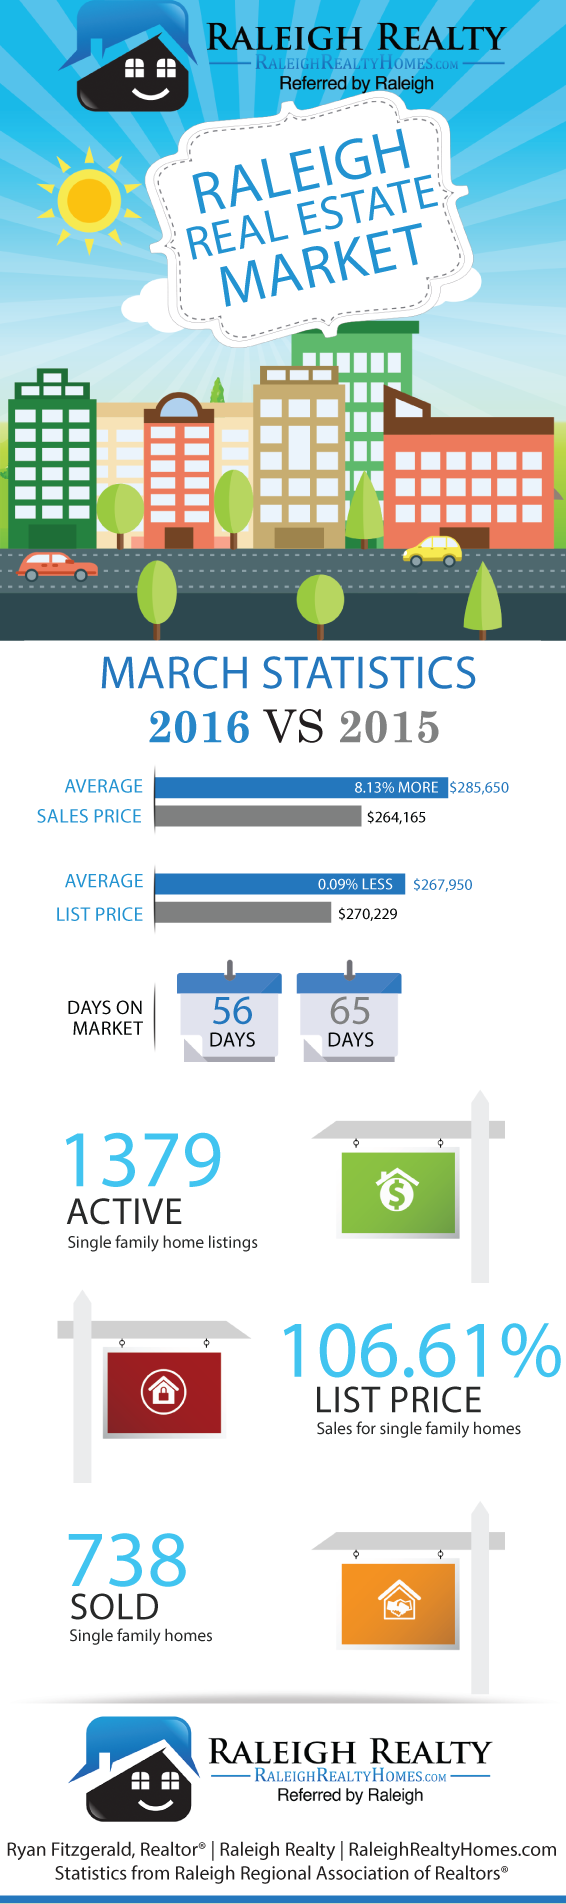 Raleigh Real Estate March 2016 Statistics Infographic